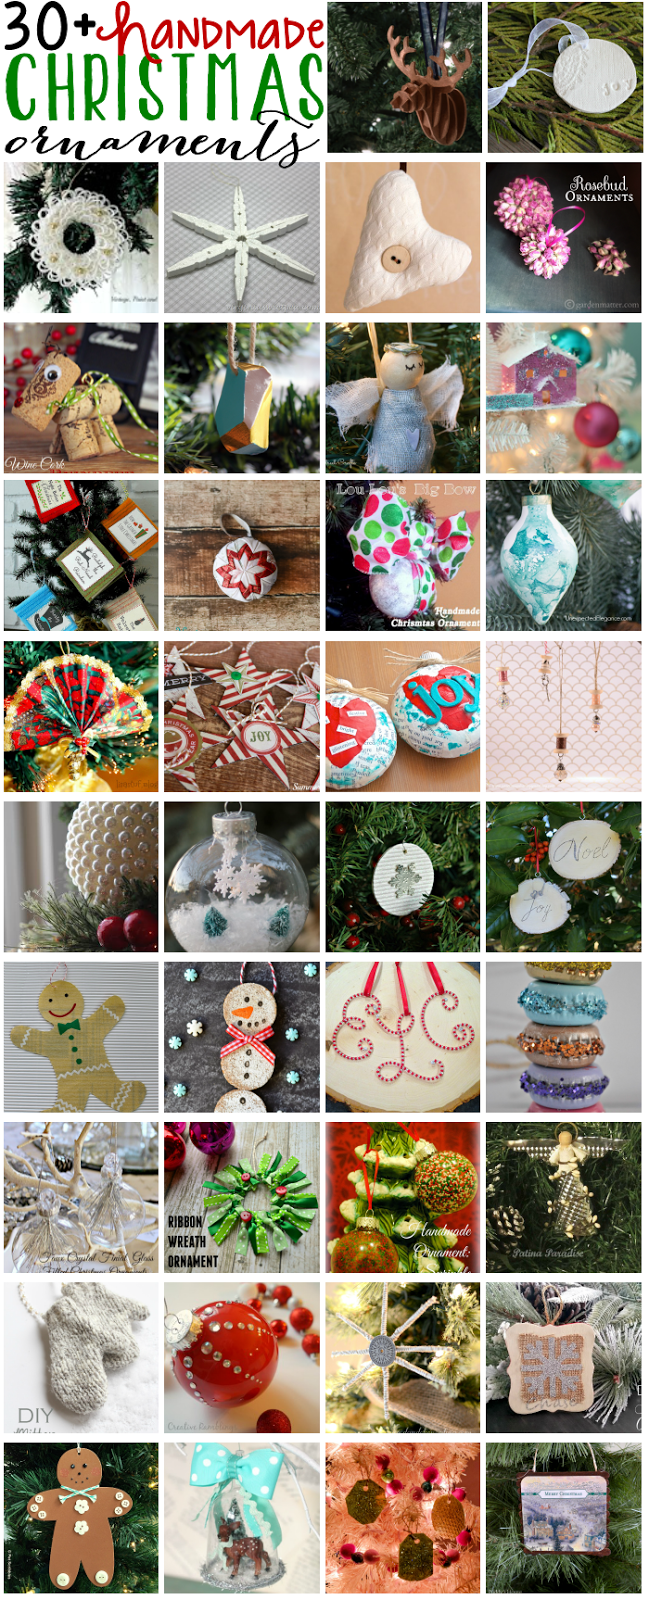 30 Handmade Ornament Ideas